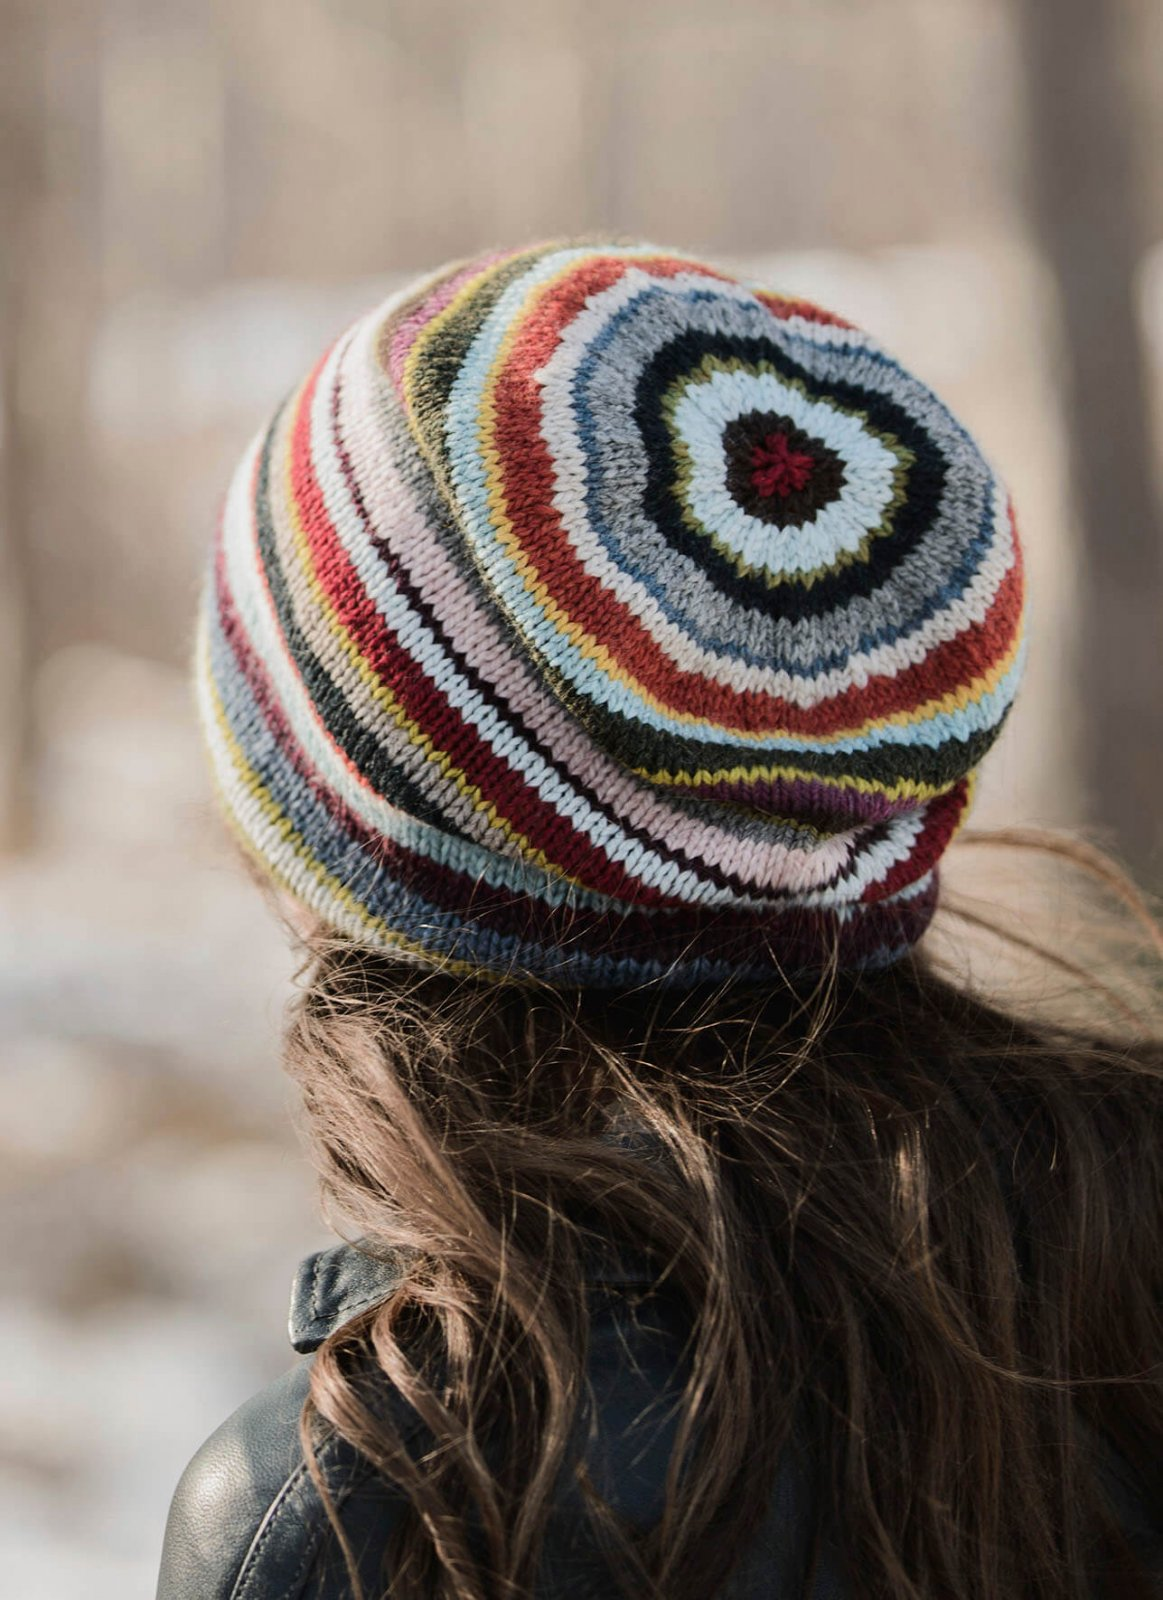 21 Color Slouch Hat Kit by Blue Sky Fibers